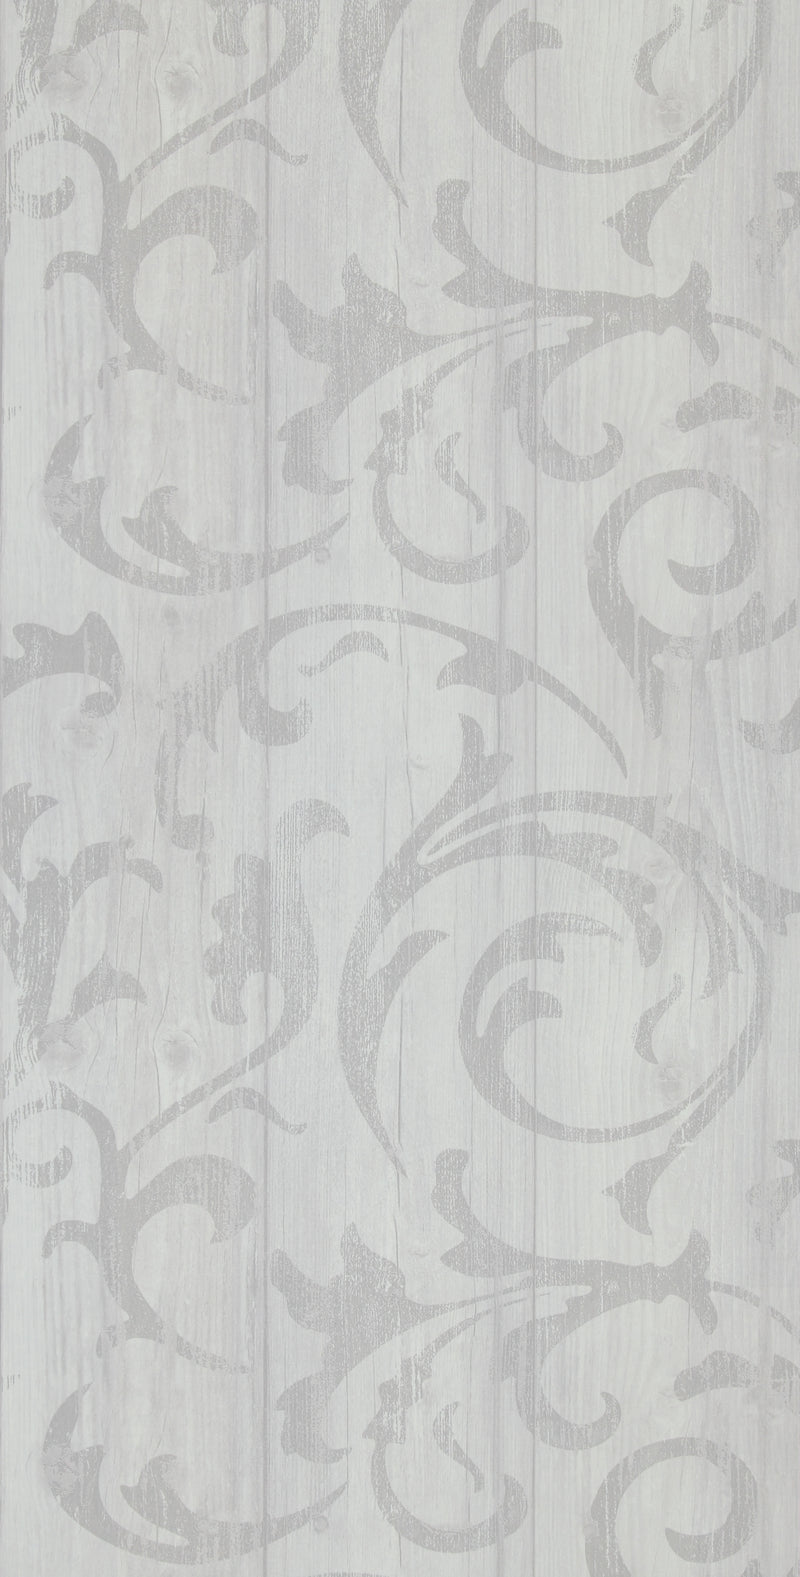 White Twisted Wood Wallpaper R2570